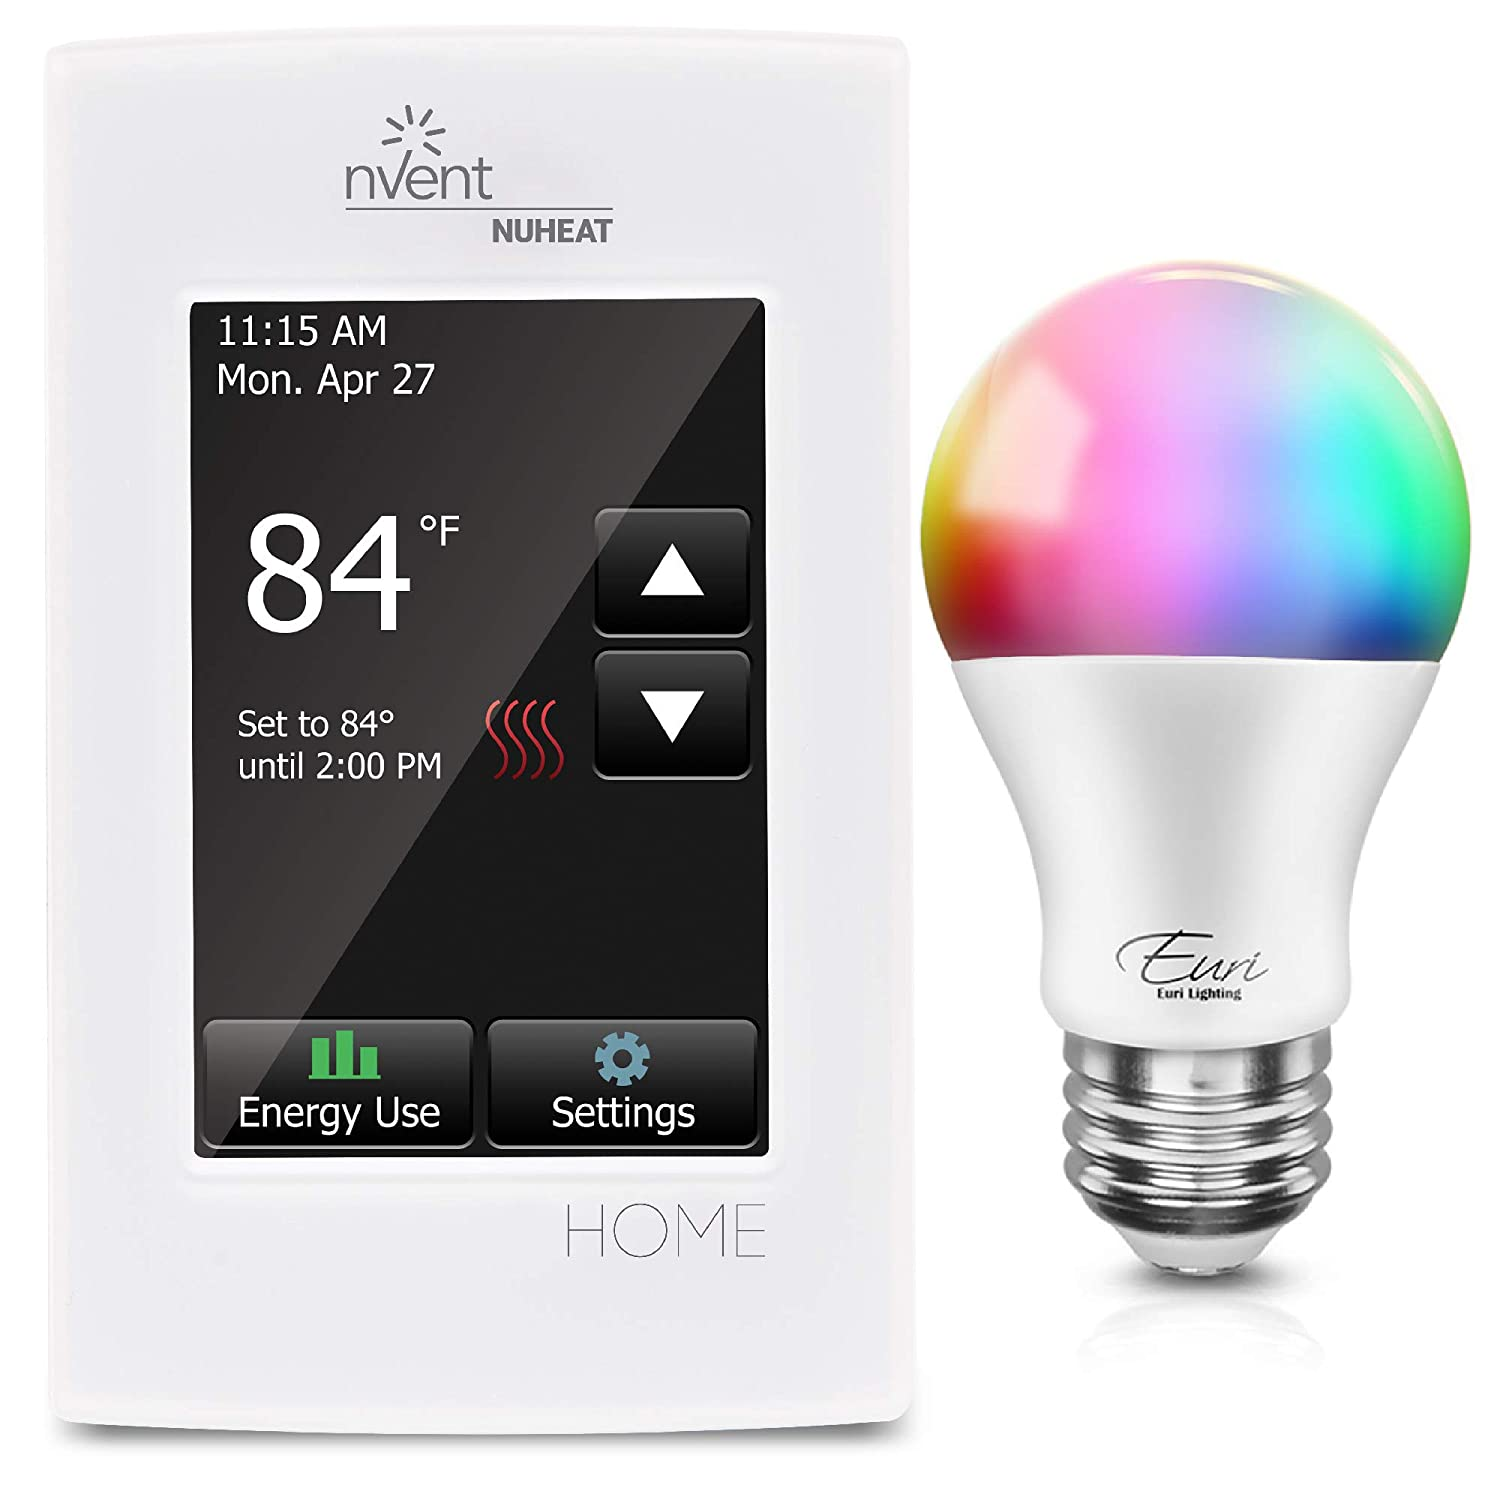 Nuheat Home Programmable Dual-Voltage Thermostat with Touchscreen with Optional Euri WiFi Smart Bulb (NuHeat Programmable Thermostat with Euri Wifi Smart Bulb)